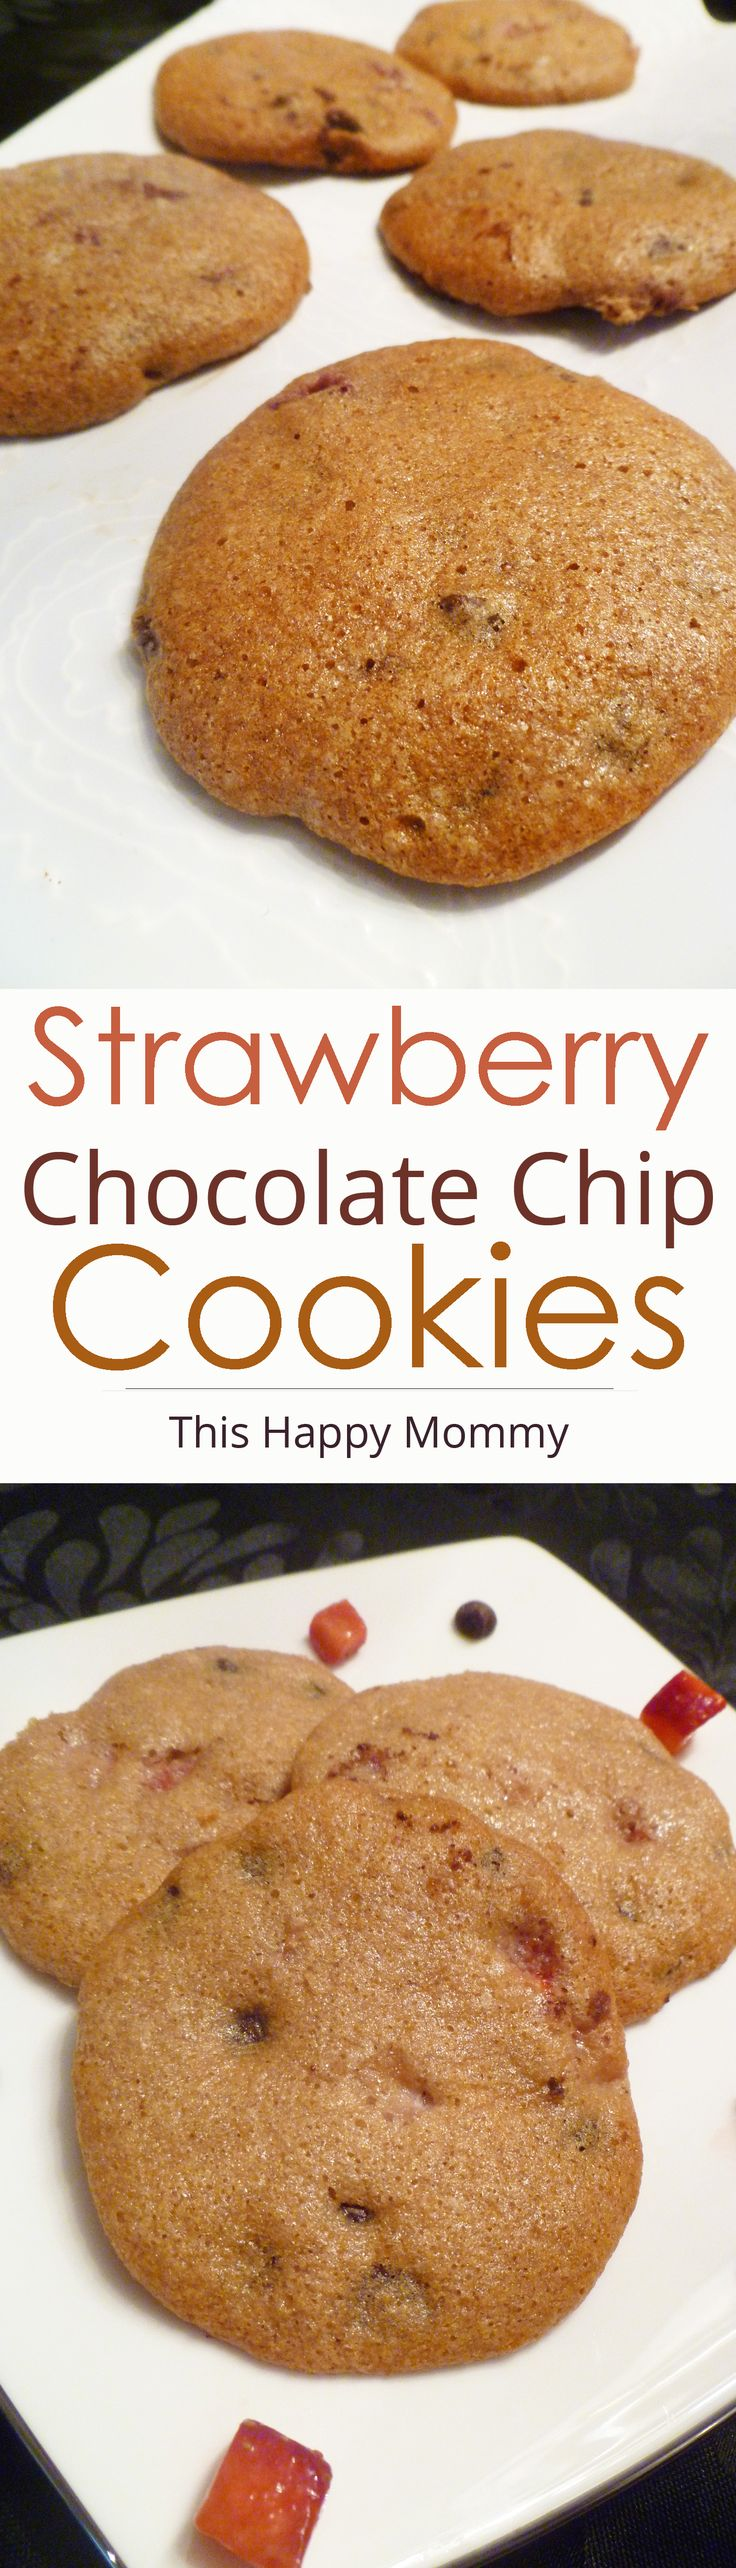 Strawberry Chocolate Chip Cookies -- Soft-baked, vanilla flavored cookies loaded with strawberries and chocolate chips. #lowfat #dessert | thishappymommy.com